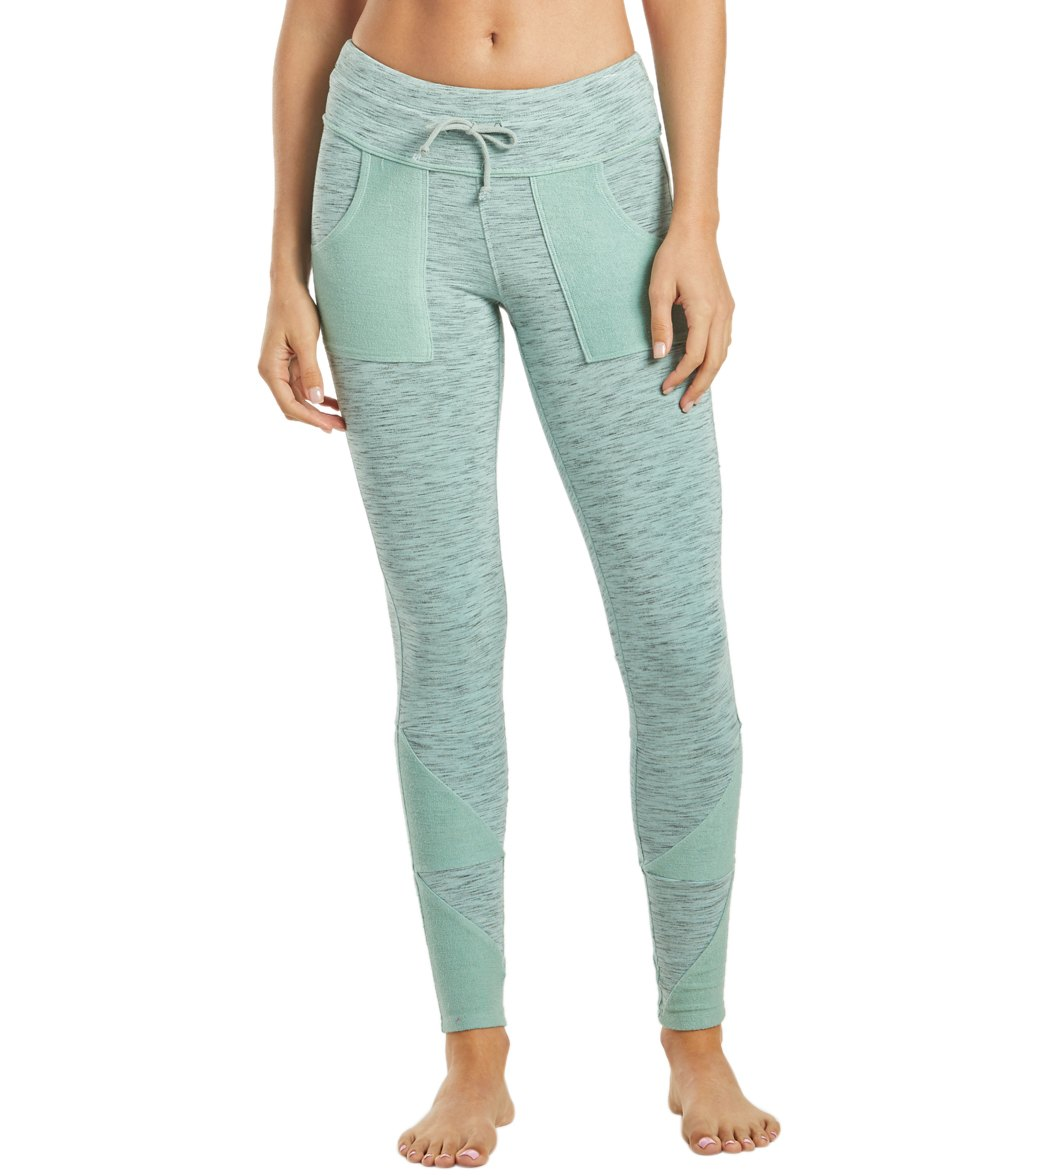 Free People Movement Kyoto Workout Leggings - Mint Cotton